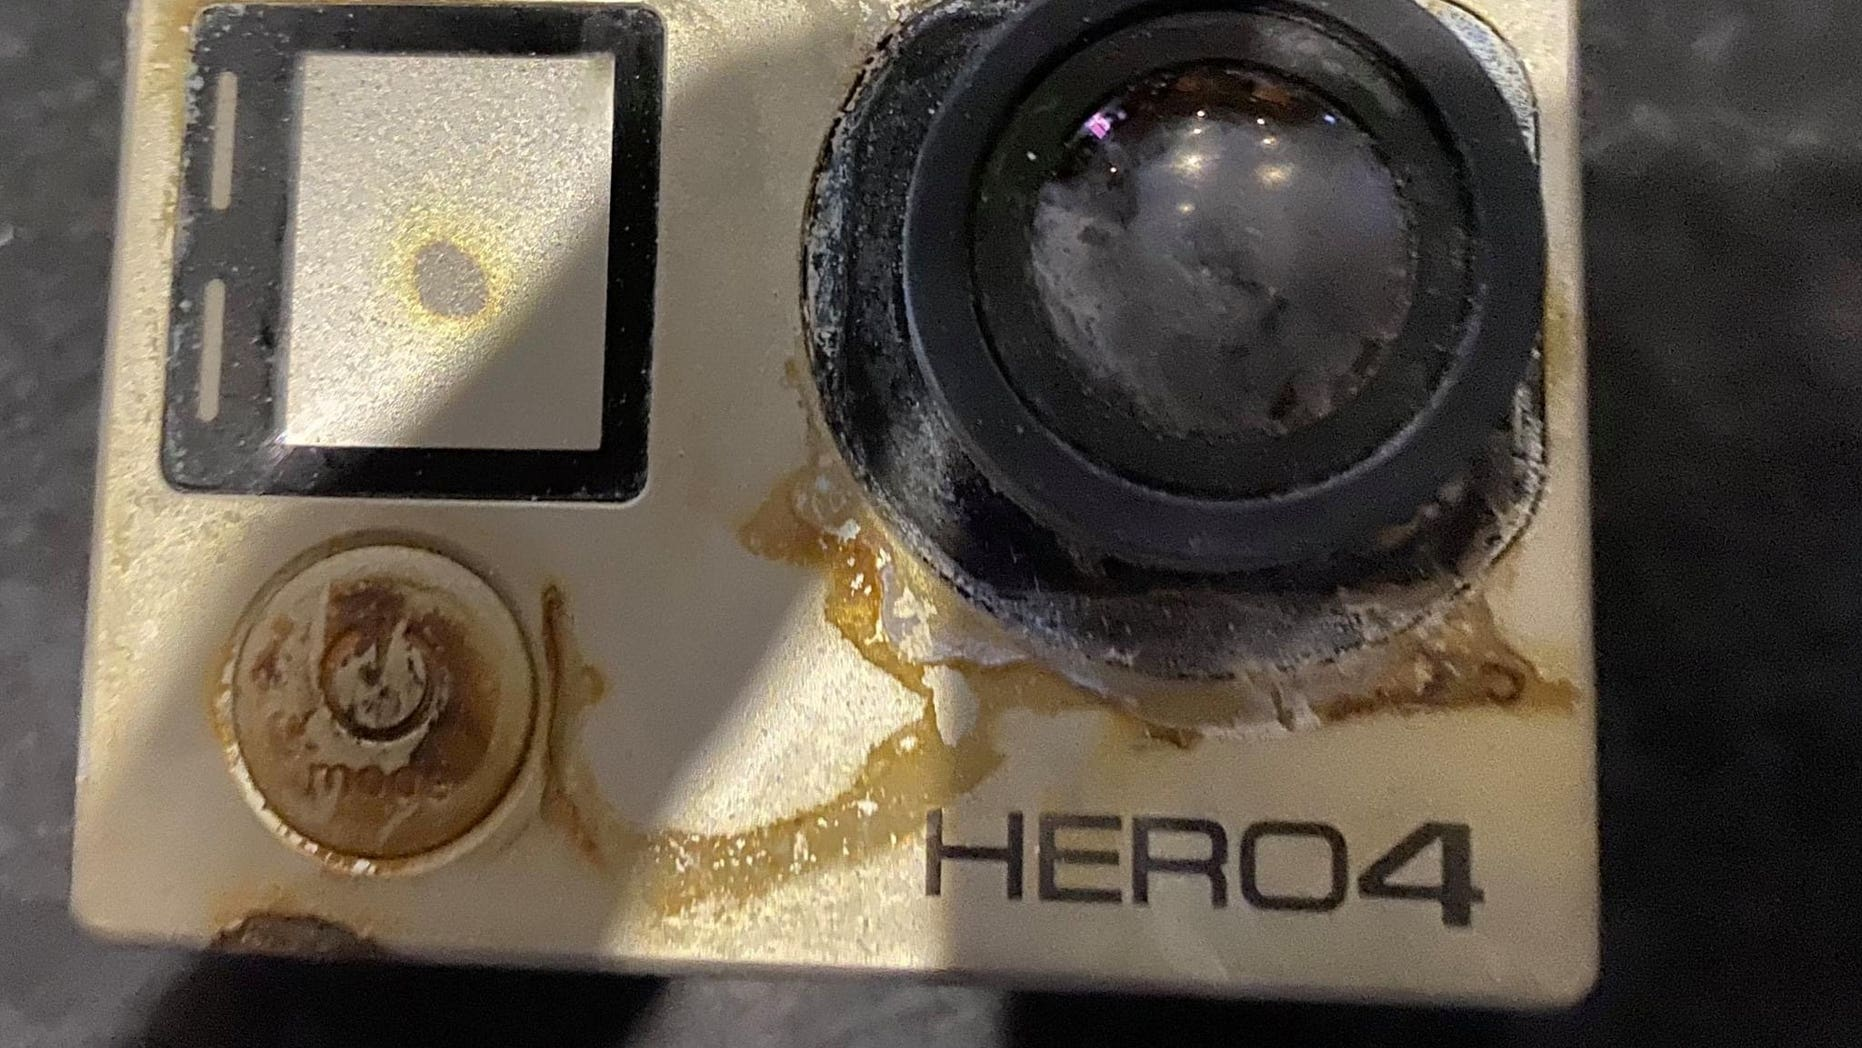 The Hero 4 Go Pro waterproof camera disappeared between the waves of the Caribbean Sea in April 2018.